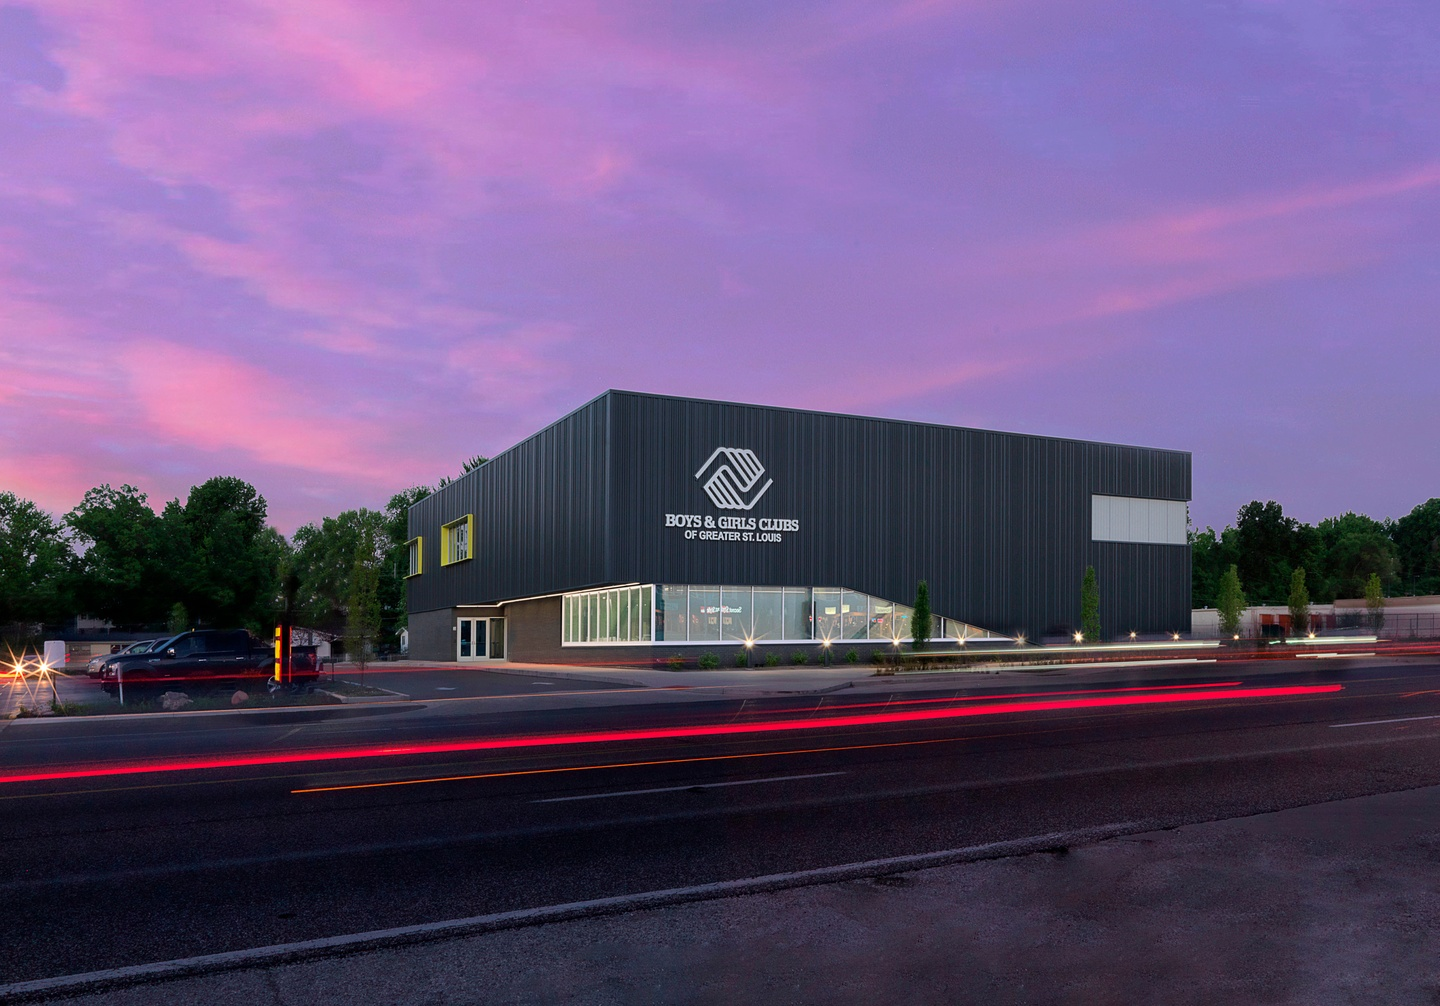 Photo of the exterior facade of new Boys & Girls club building, with a contemporary design including a bank of floor-to-ceiling first floor windows wrapping around the front corner of the building. The photo is shot at dusk with a purple sky and the street in front in view.